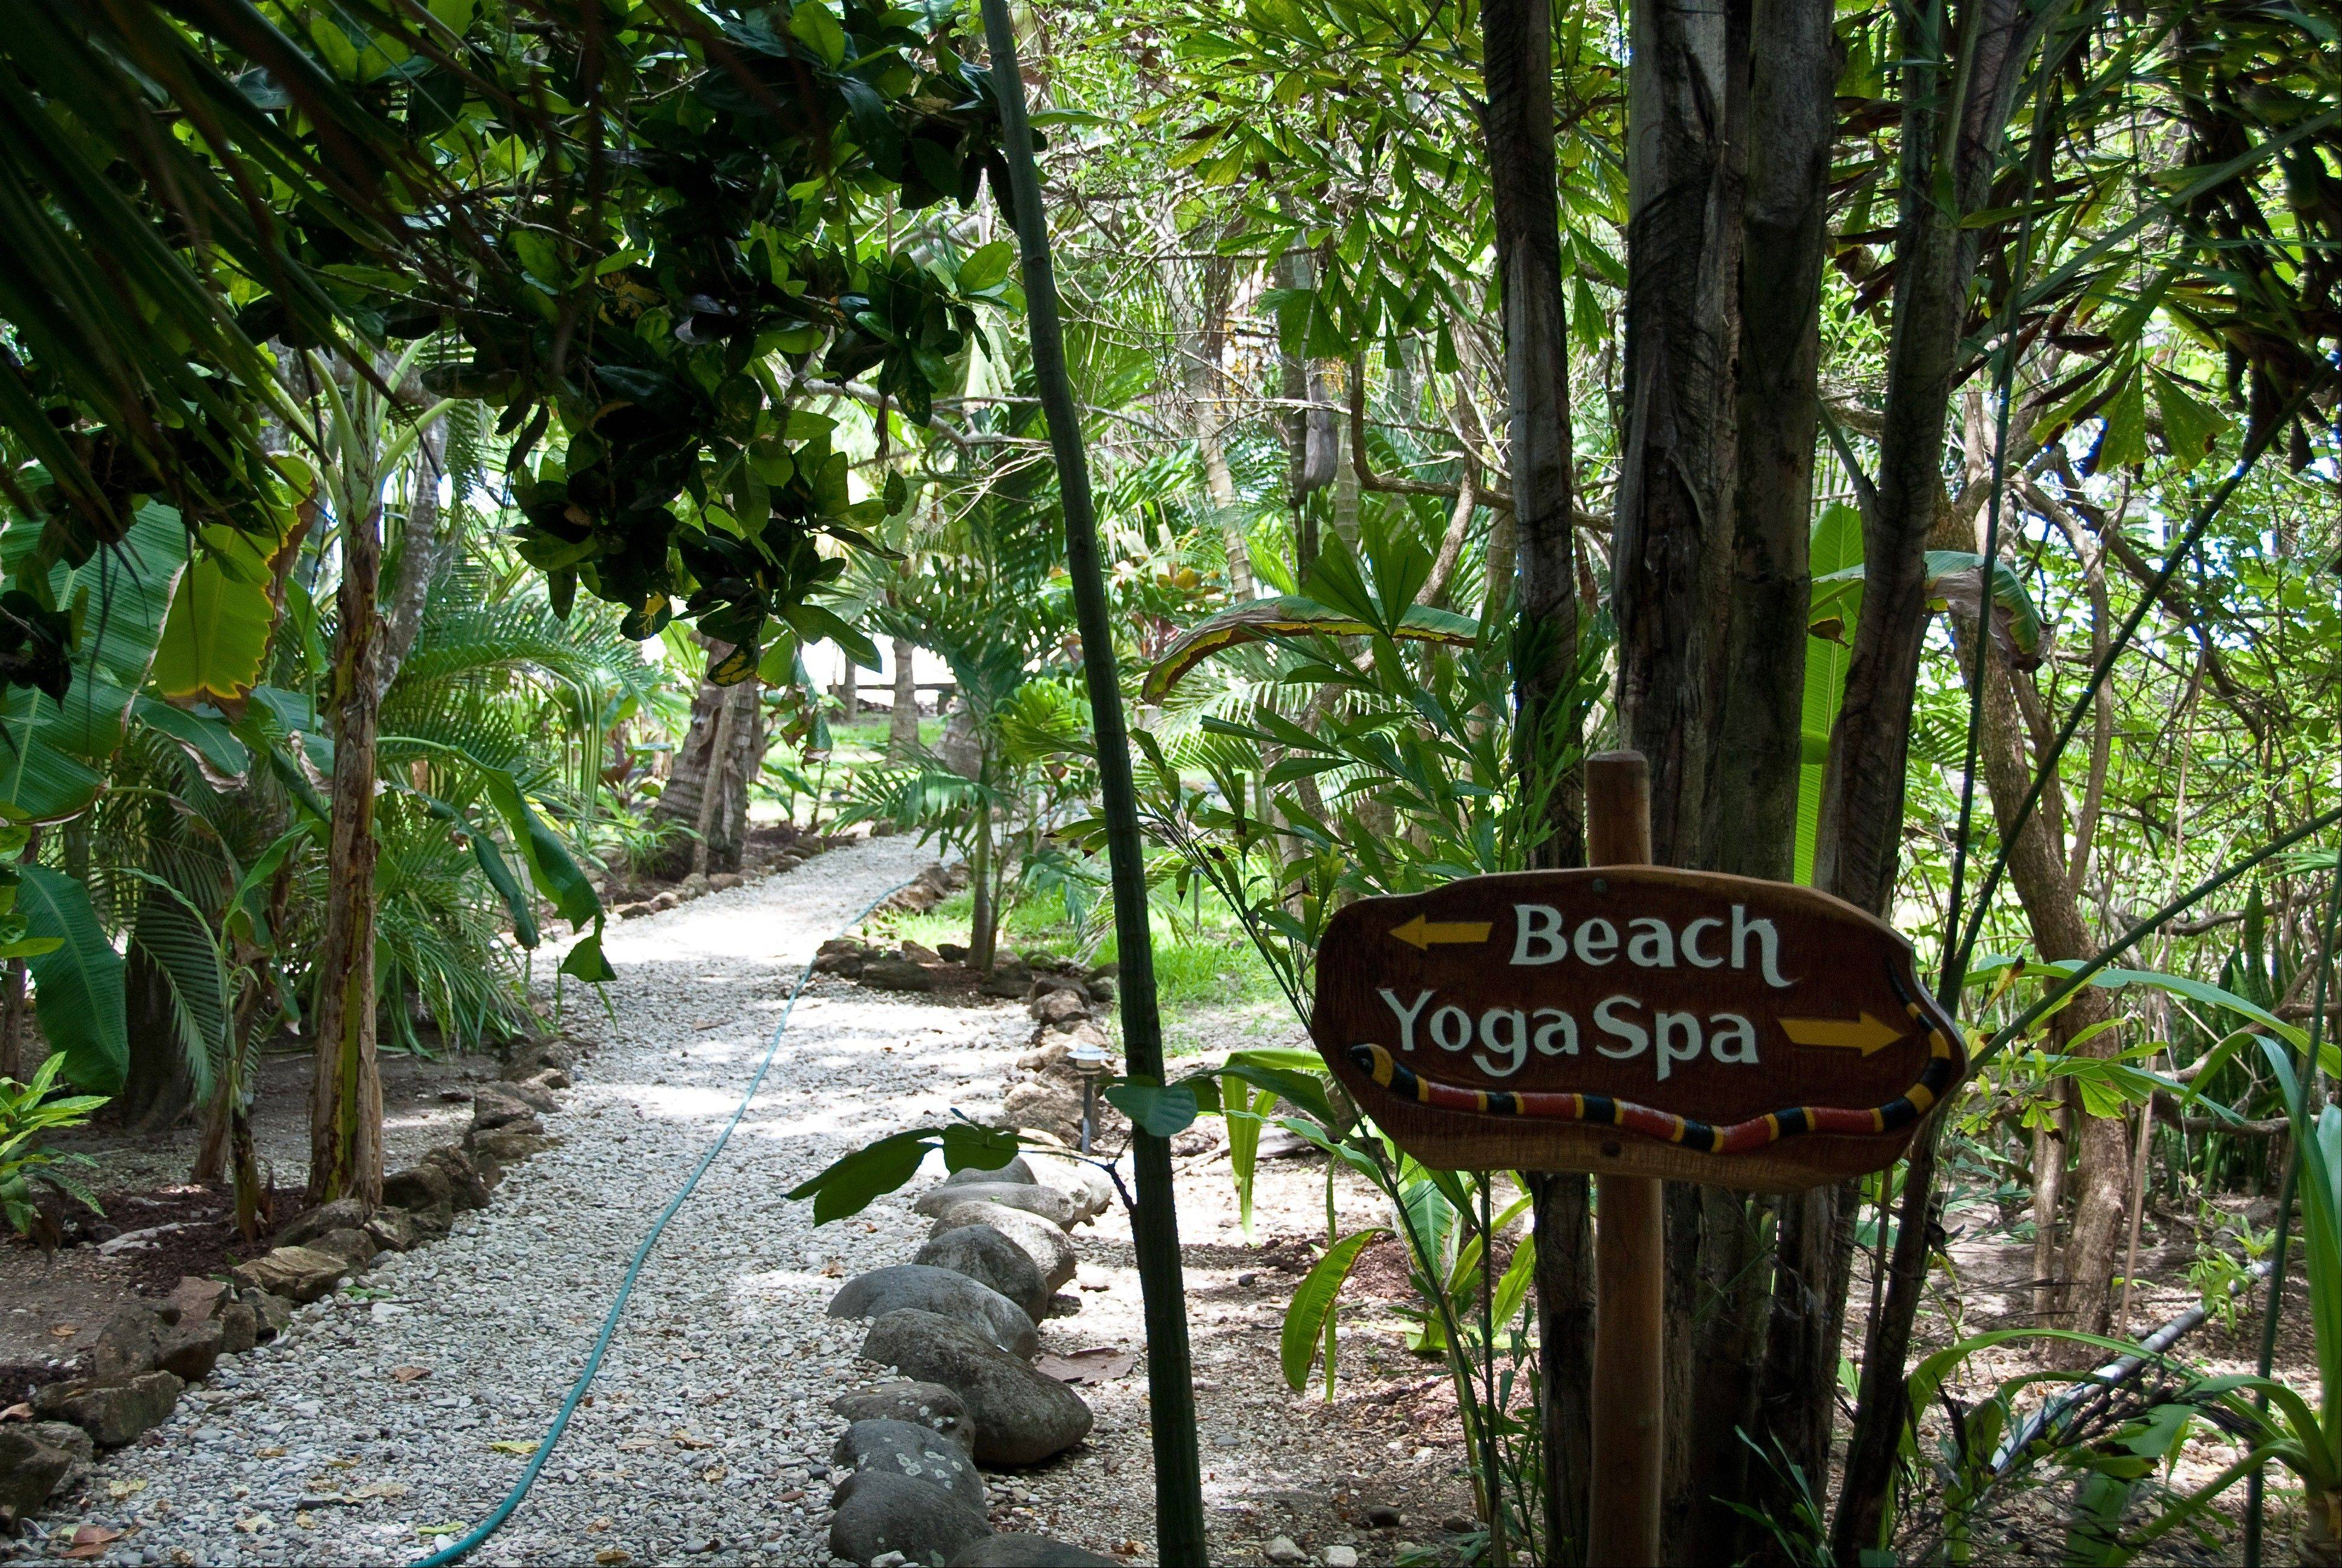 The grounds of Pura Vida Adventures, a surf and yoga camp in Malpais, Costa Rica.